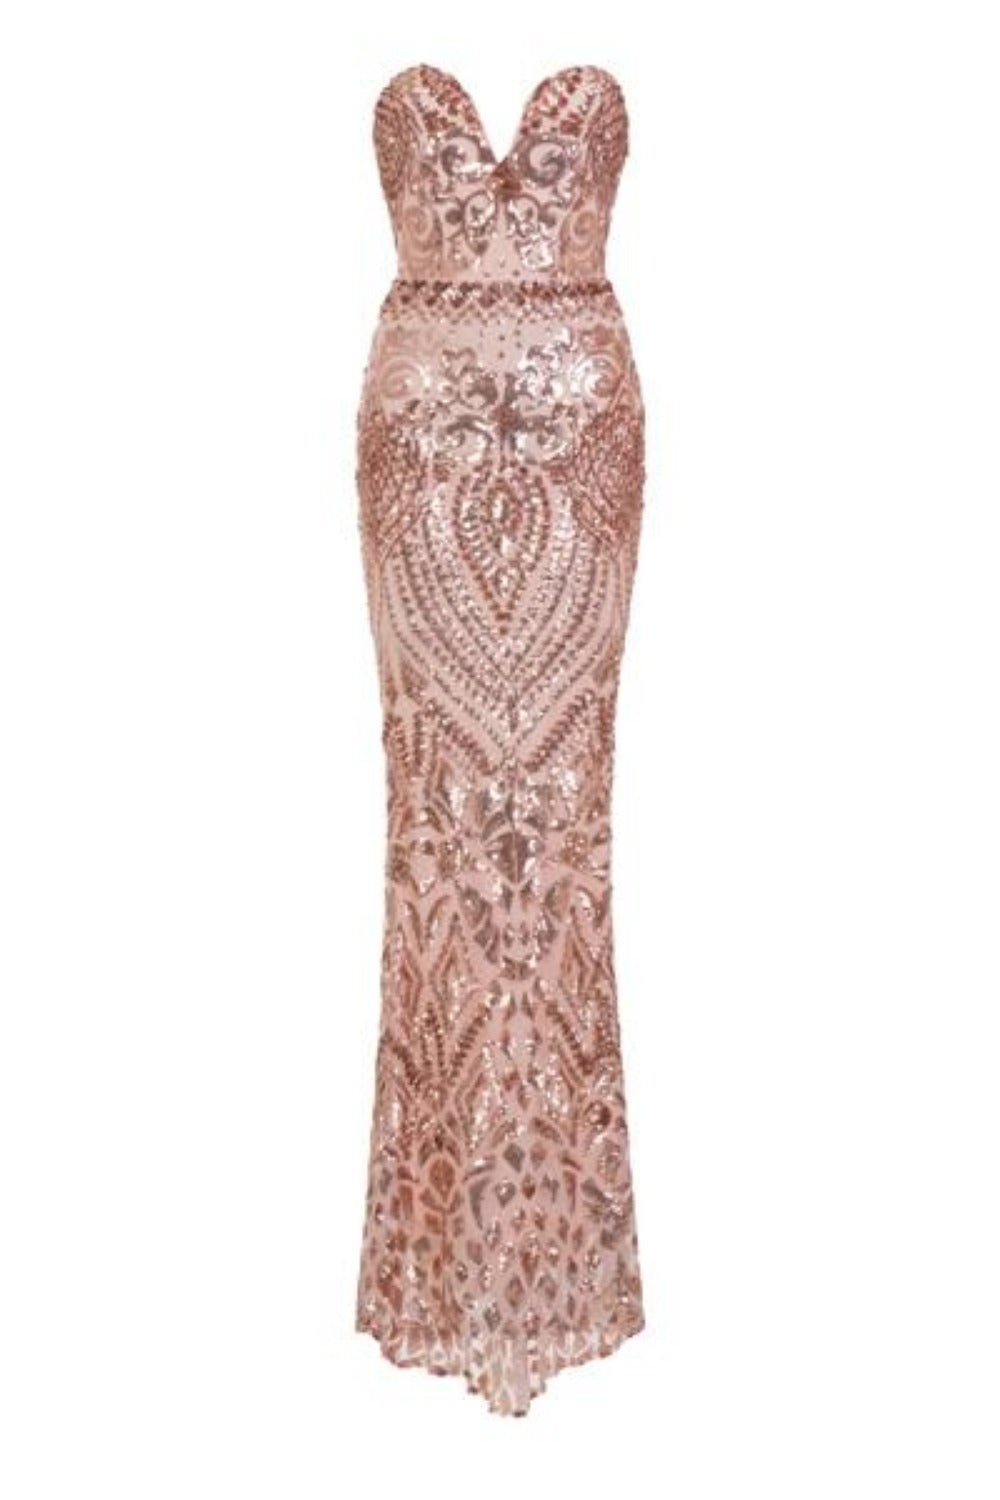 Kenza Gold Luxe Sweetheart Plunge Sequin Embellished Fishtail Dress